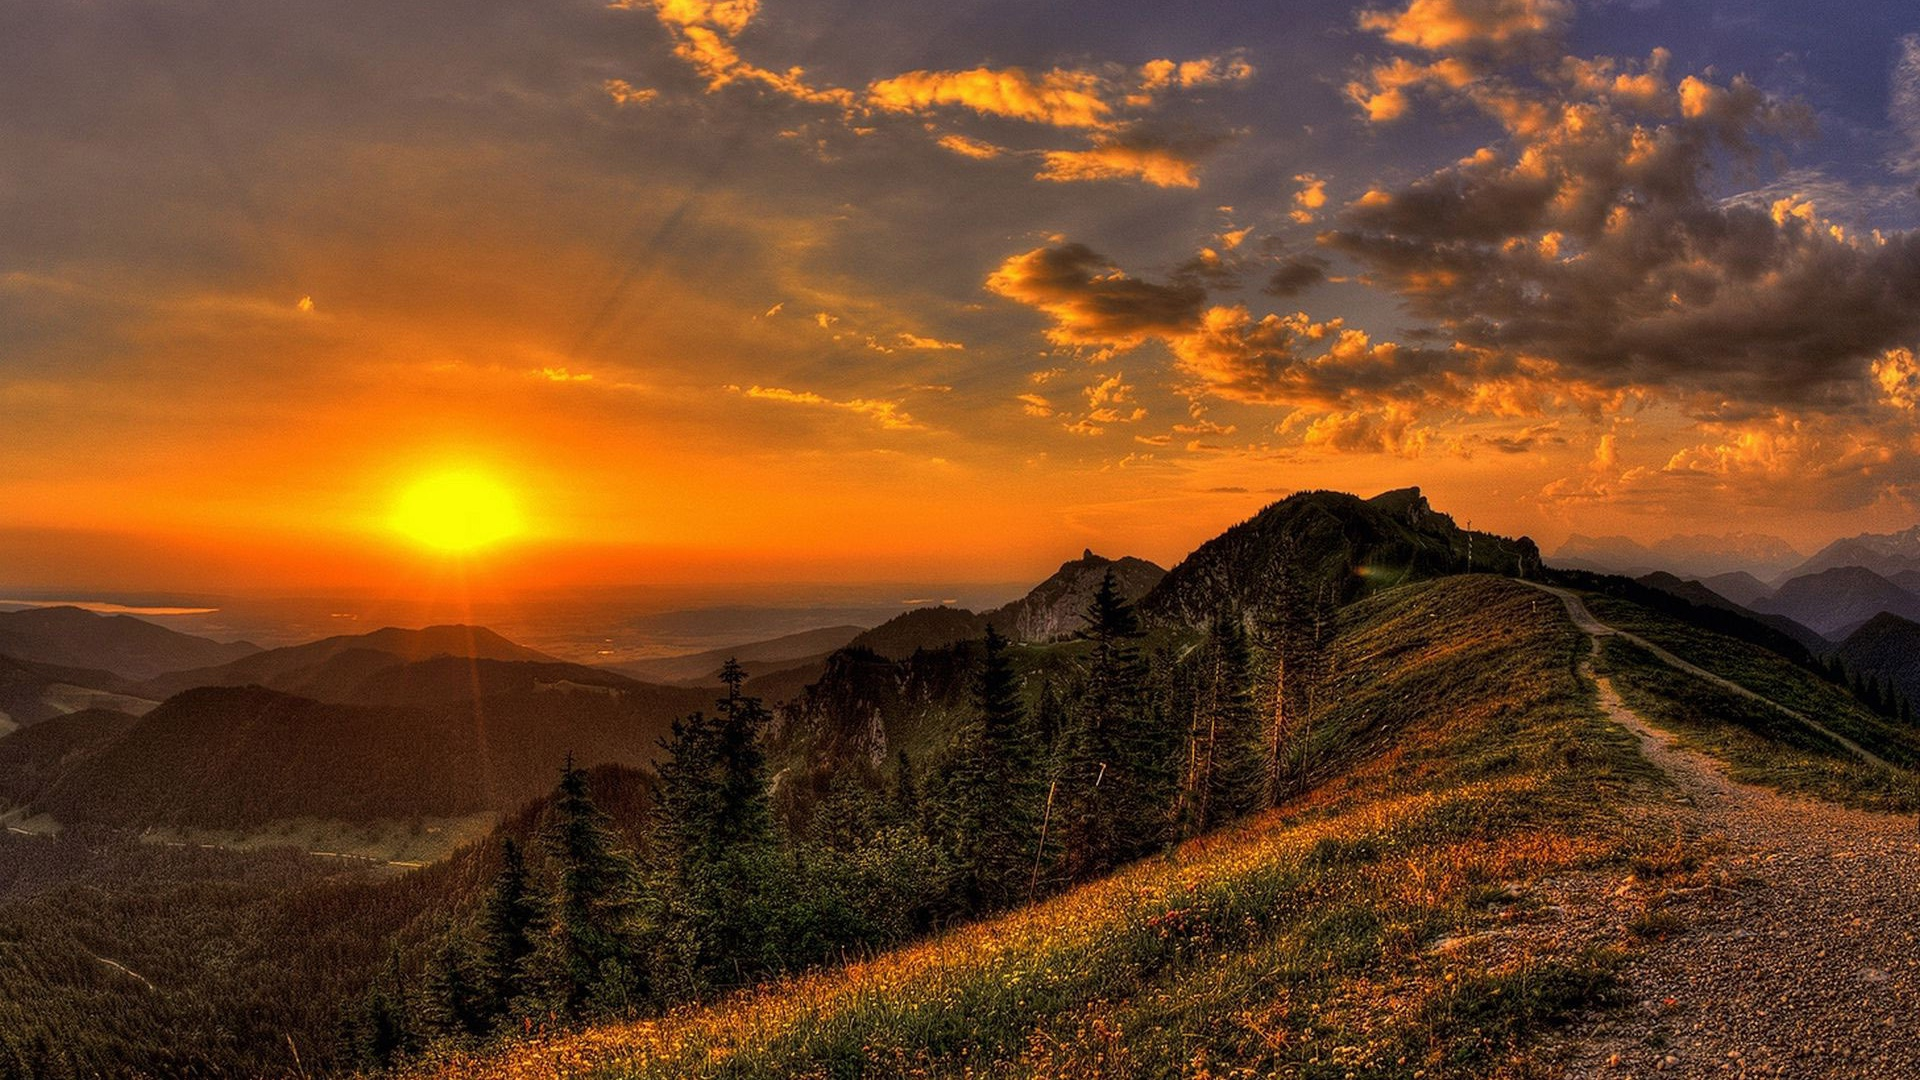 Serene Wallpapers Large Fall 1920x1080 Golden Sunset Mountains Path Desktop Pc And Mac